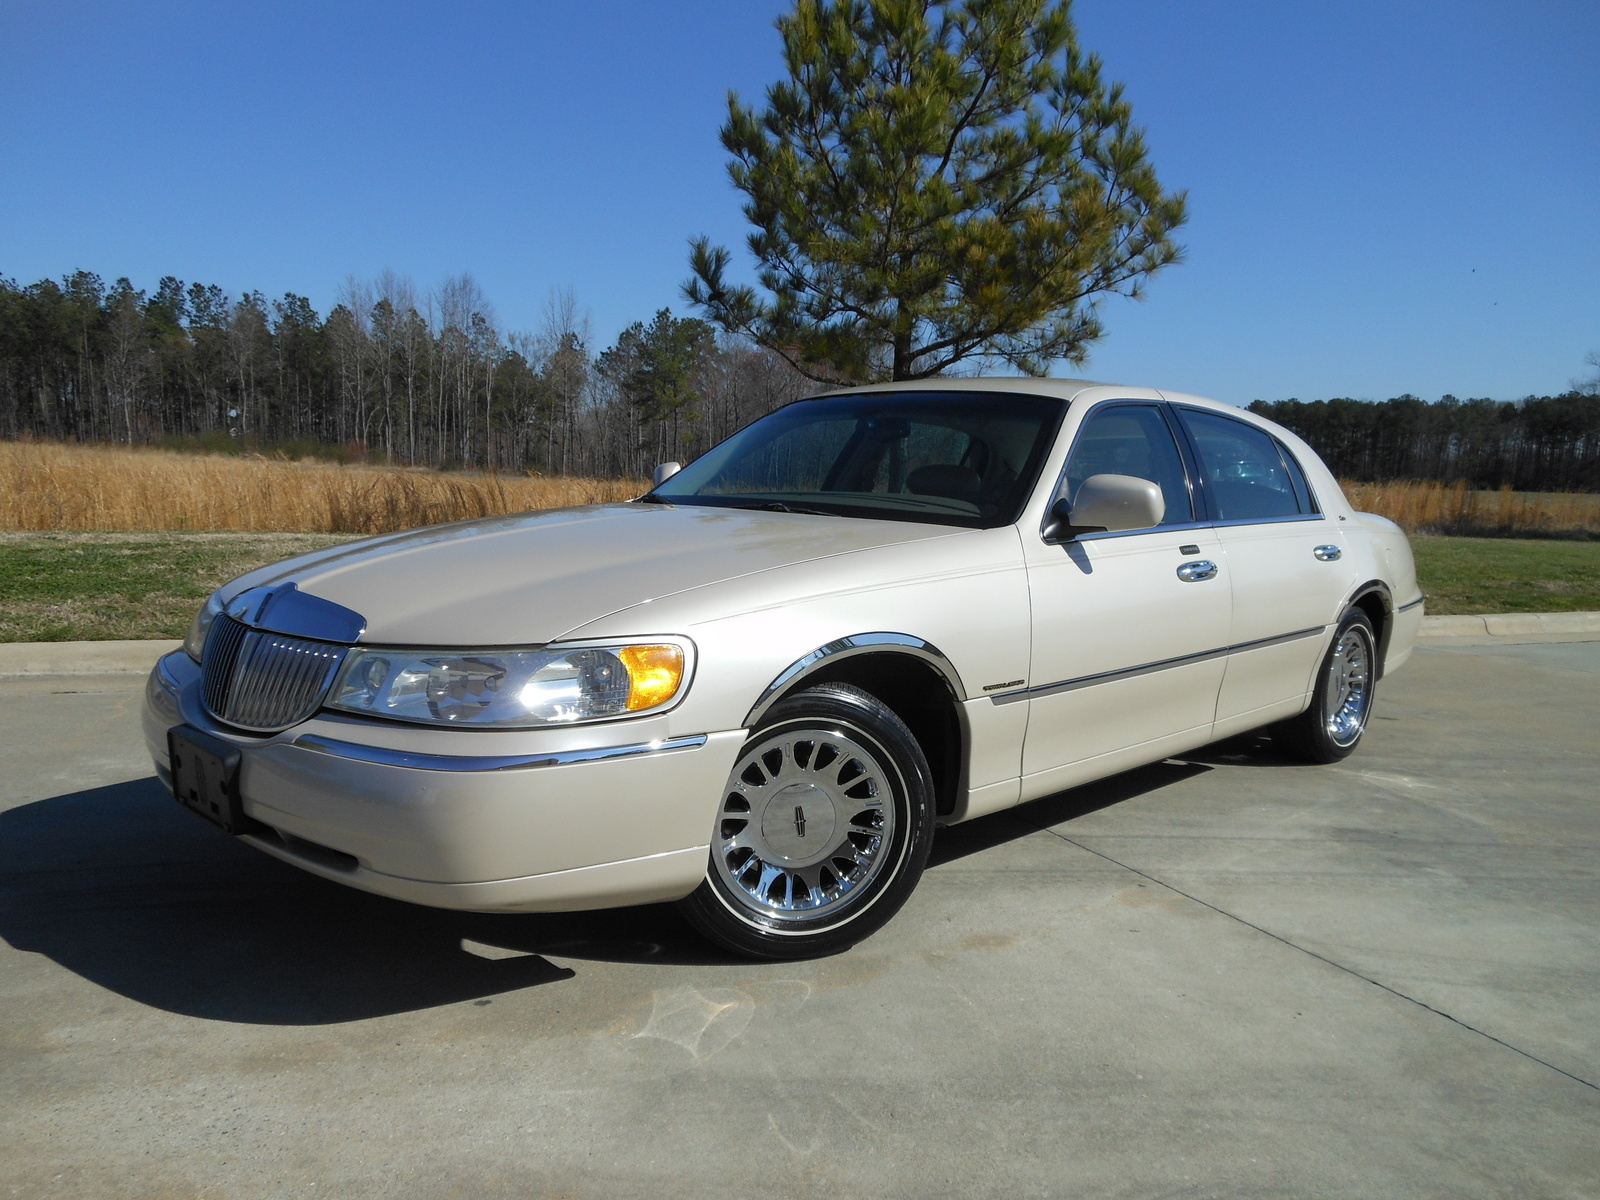 Ford Crown Victoria Questions Will 2002 Ford Mustang Lowering